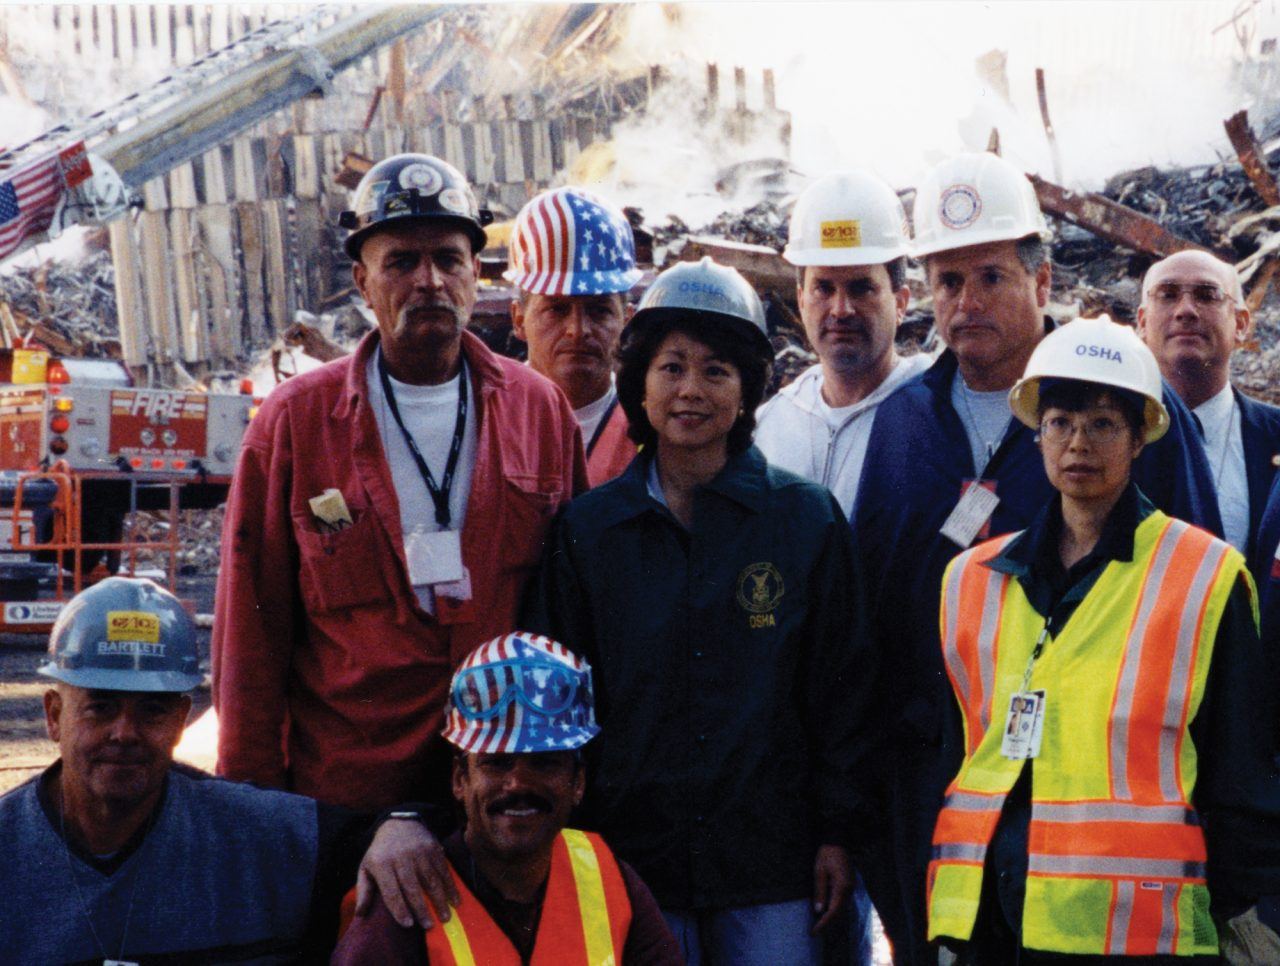 Secretary Elaine Chao with OSHA colleagues and workers at Ground Zero after 9/11/01.